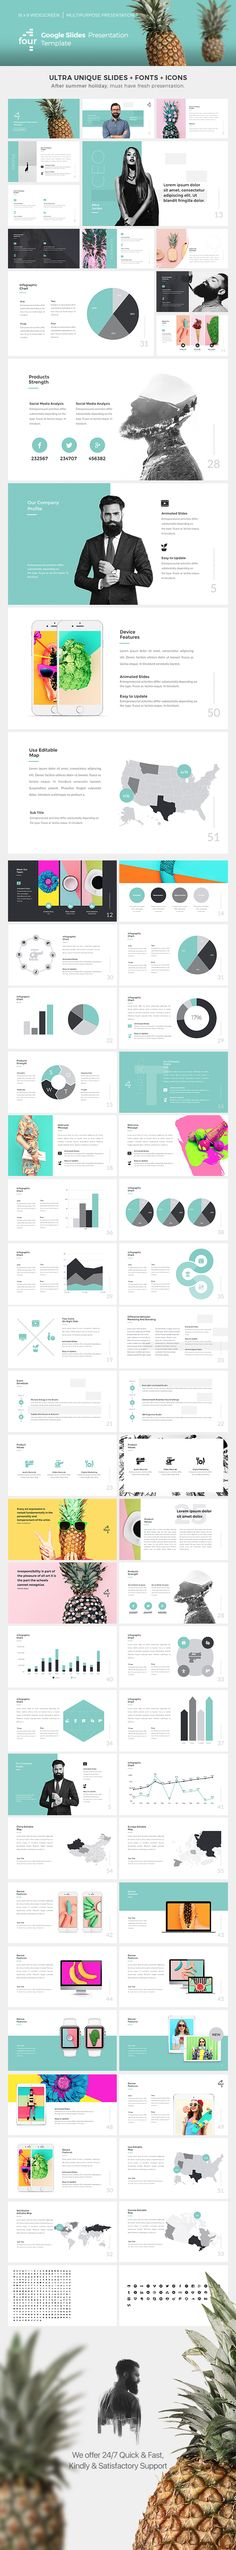 Four - Google Slides Presentation Template. Download here: https://graphicriver.net/item/four-google-slides-presentation-template/17639804?ref=ksioks